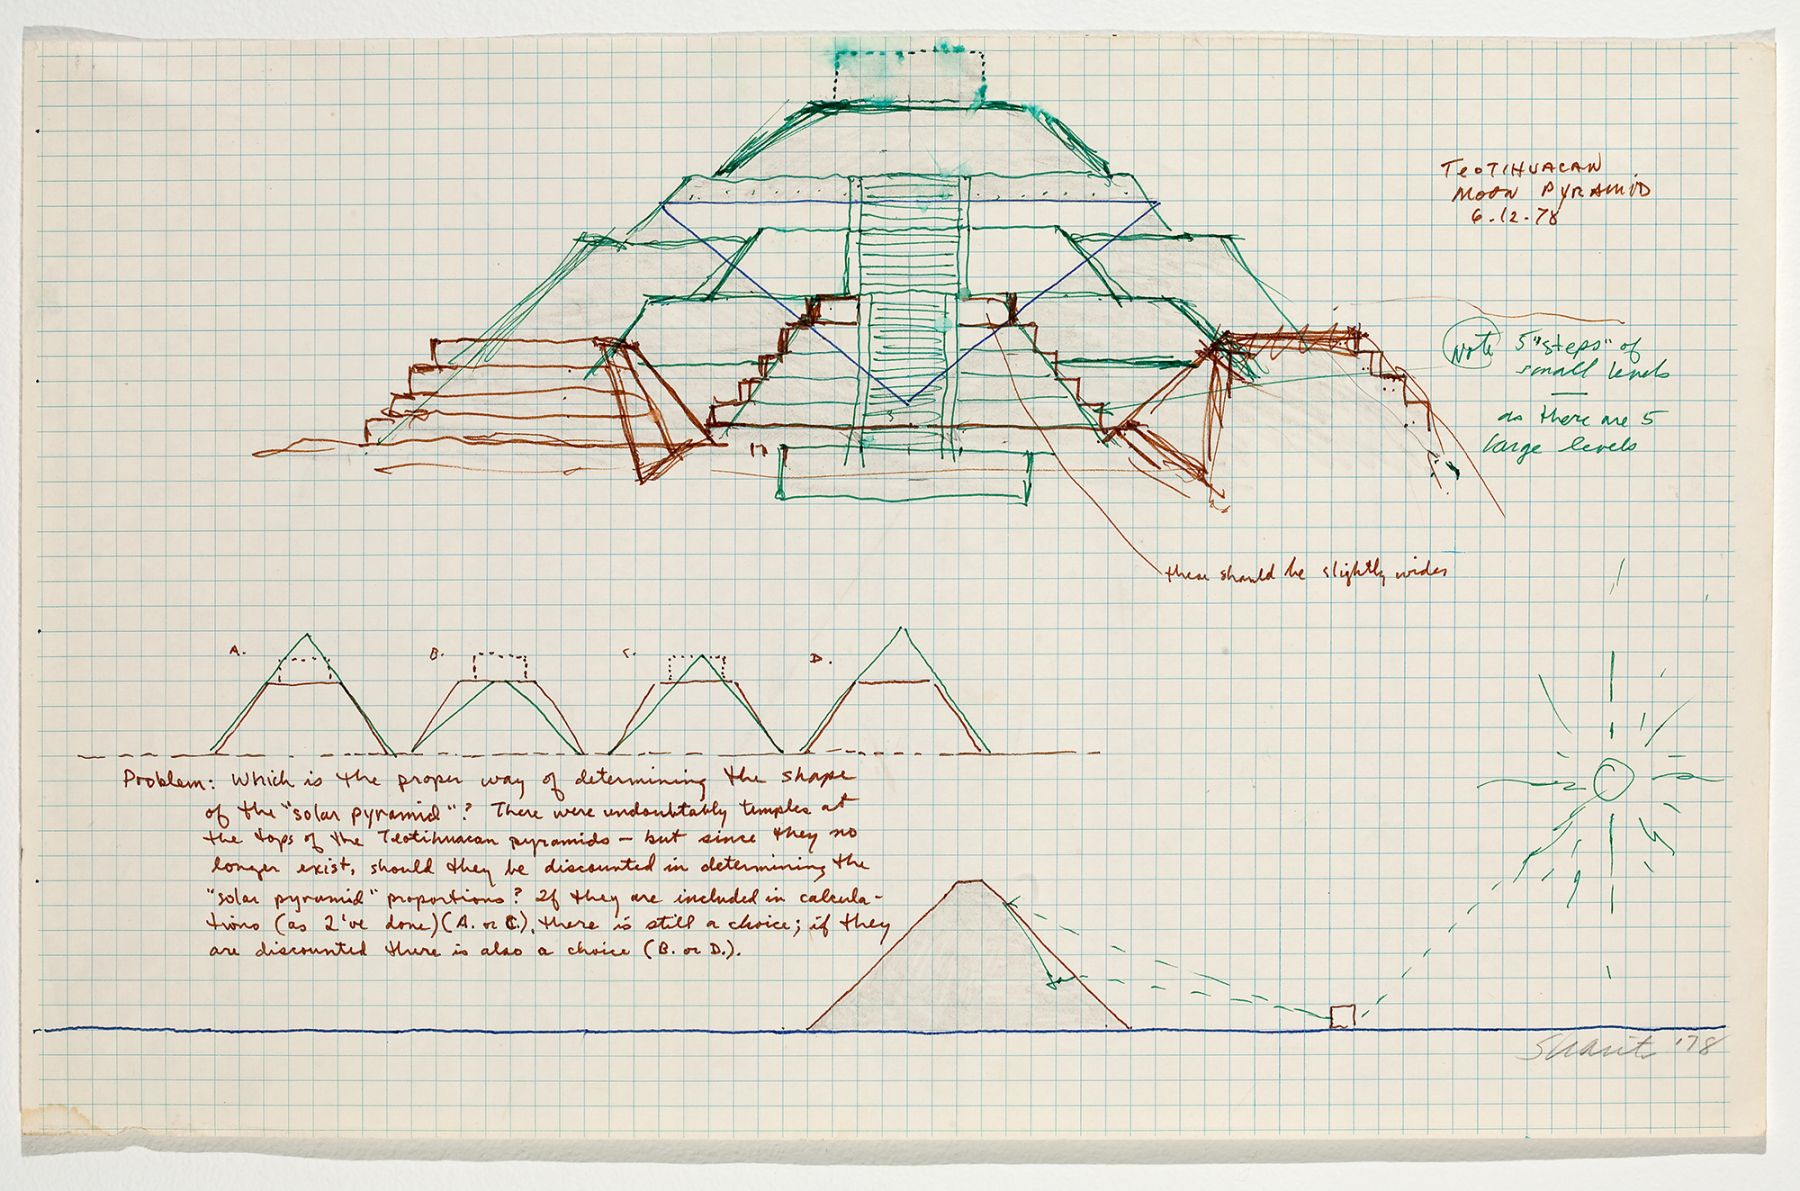 Teotihuacan Moon Pyramid, 1978, colored ink on paper, 11 x 17 1/2 inches